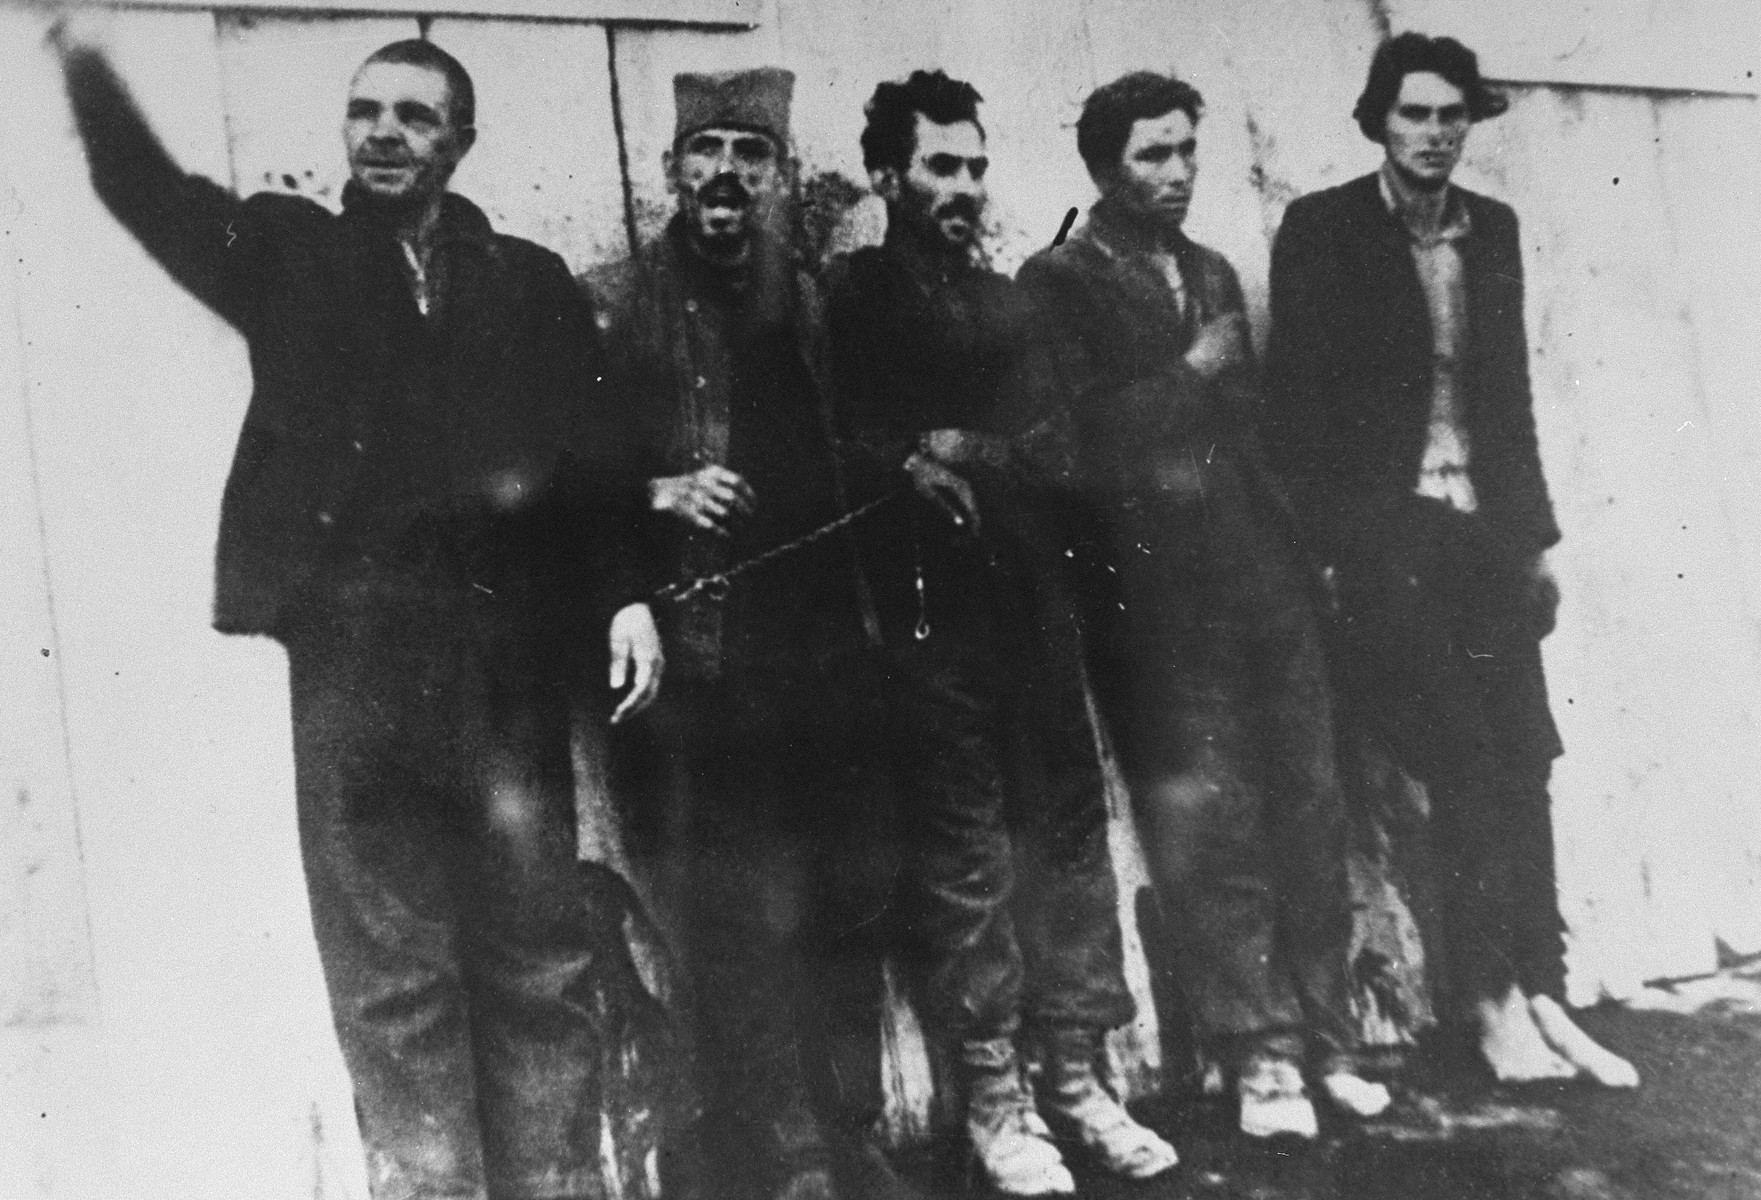 Five Serbian partisans just prior to their execution by a German army firing squad.  According to the Muzej Revolucije Narodnosti Jugoslavije, the men being executed are members of the regional committee of the Communist Party.